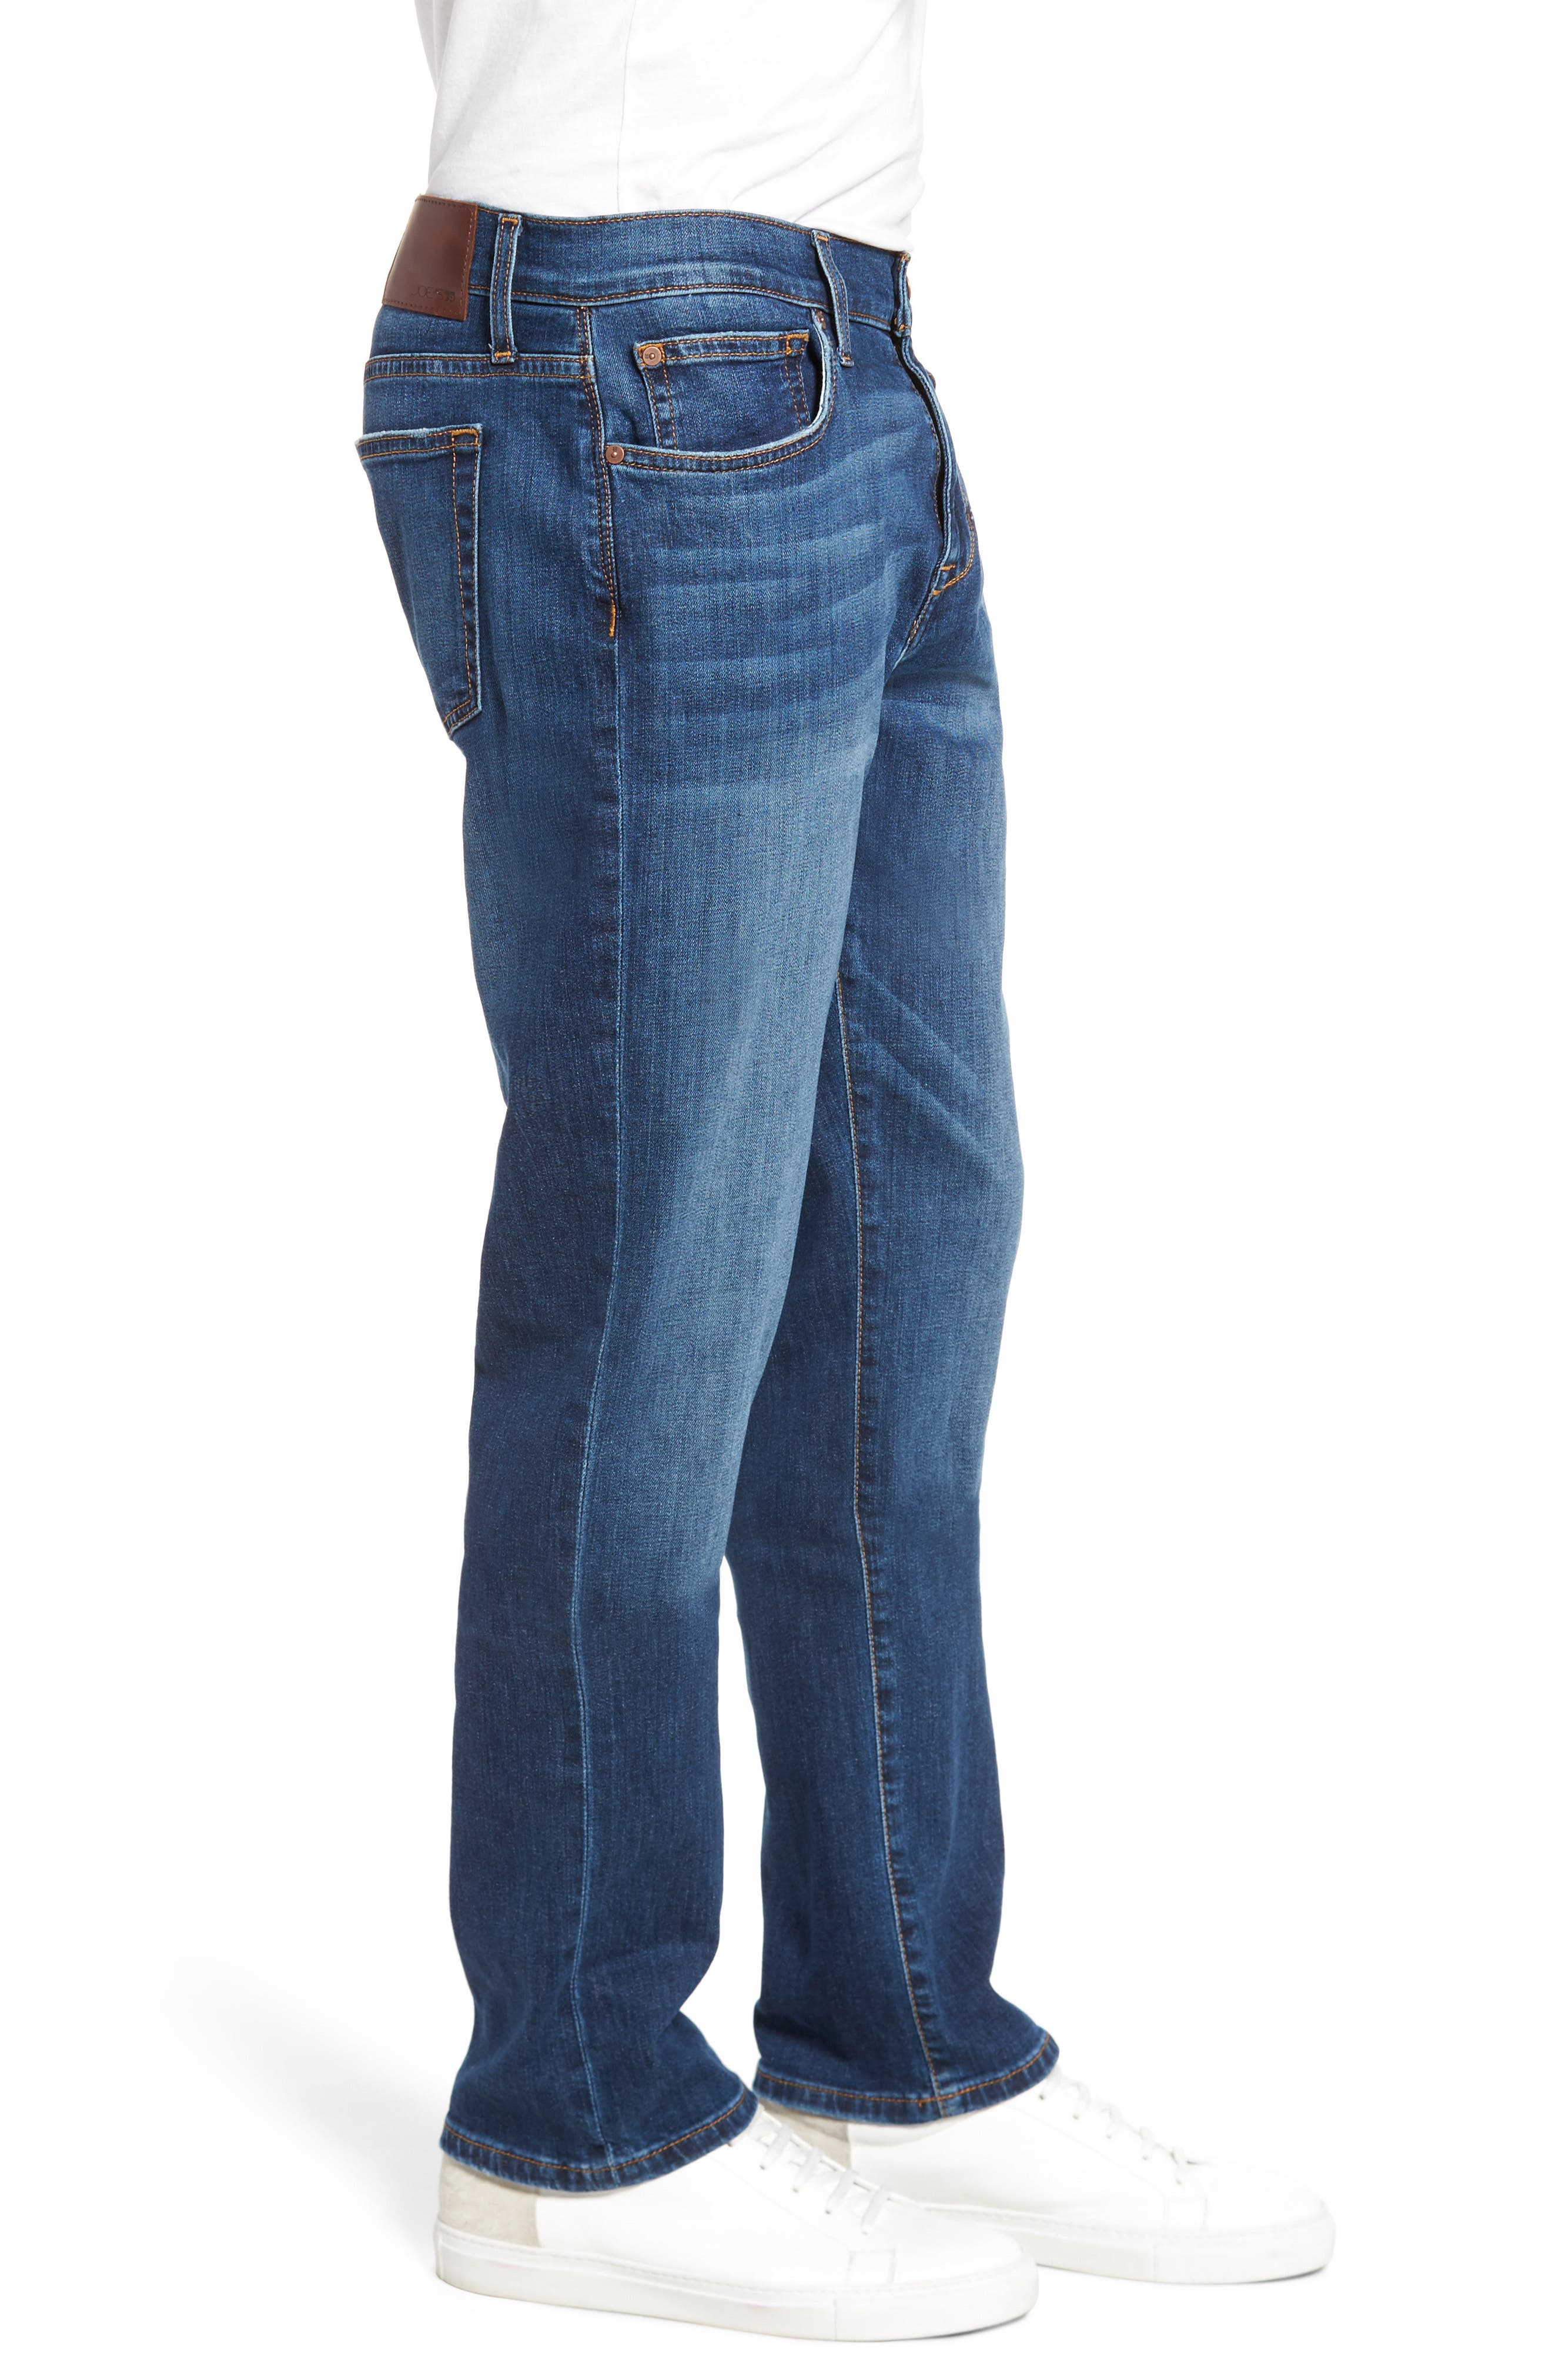 Brixton Slim Straight Fit Jeans,                             Alternate thumbnail 3, color,                             BRADLEE